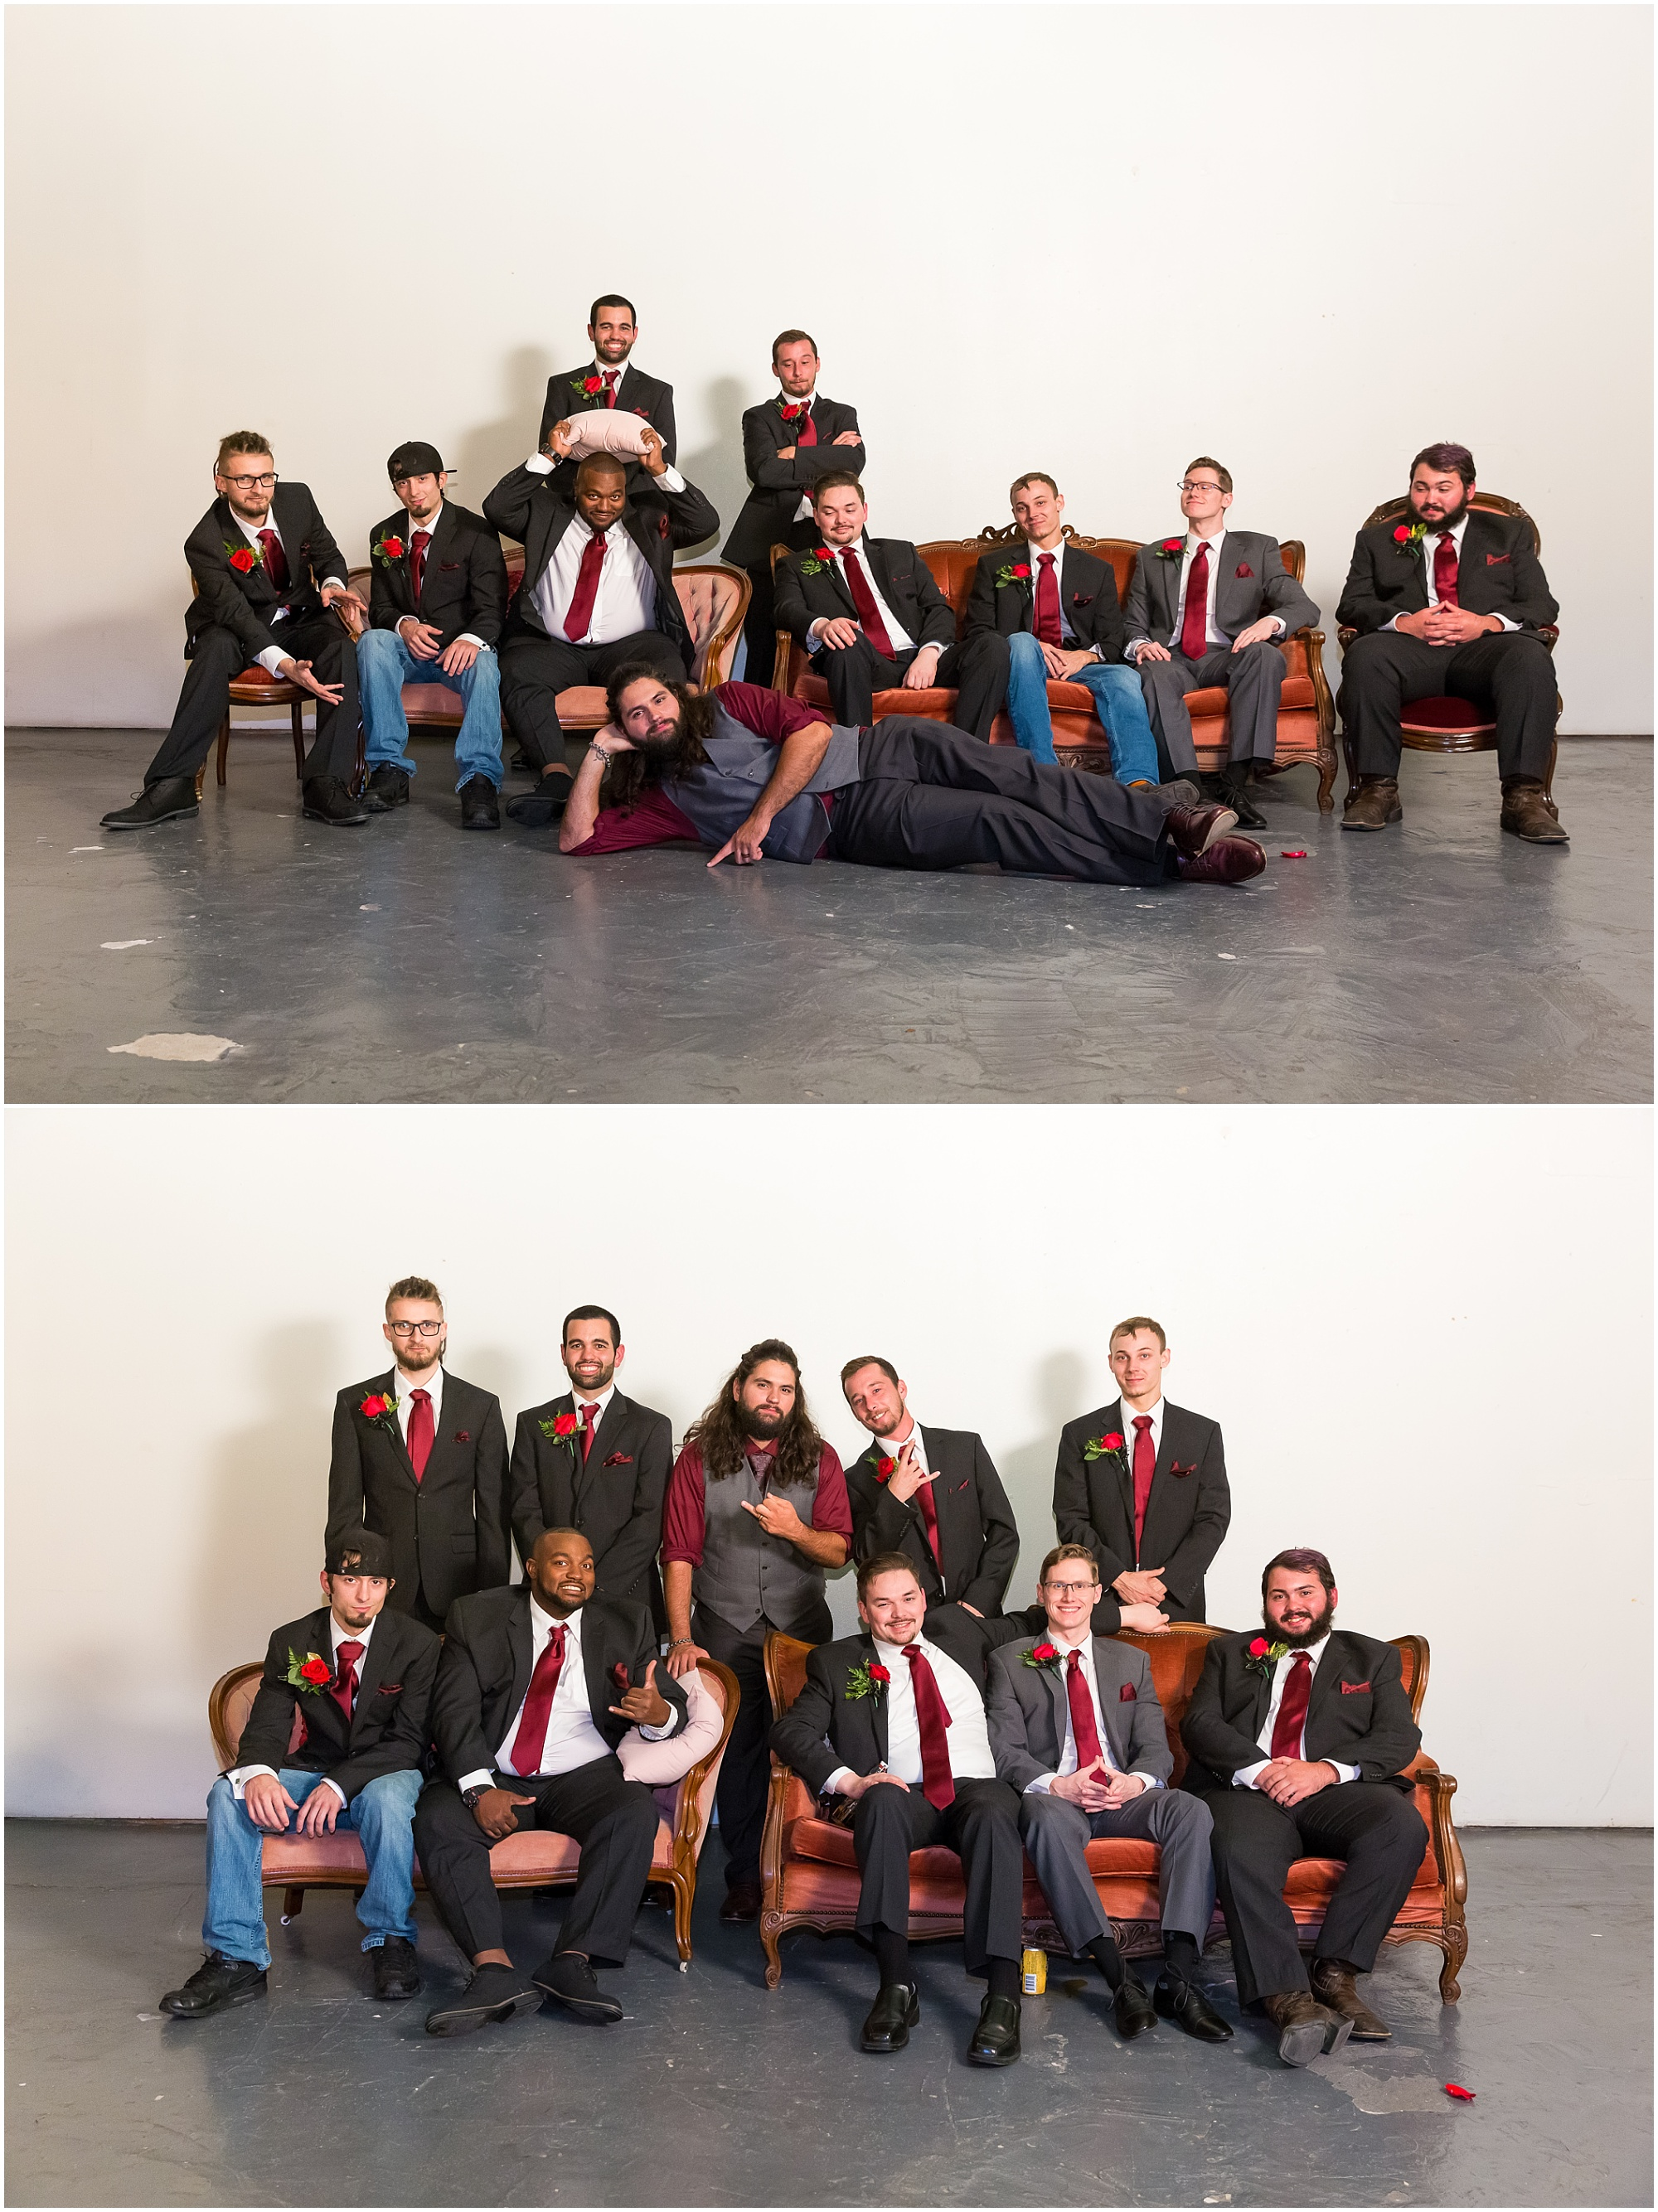 Groomsmen pose together in photo seating area - Jason & Melaina Photography - http://jasonandmelaina.com